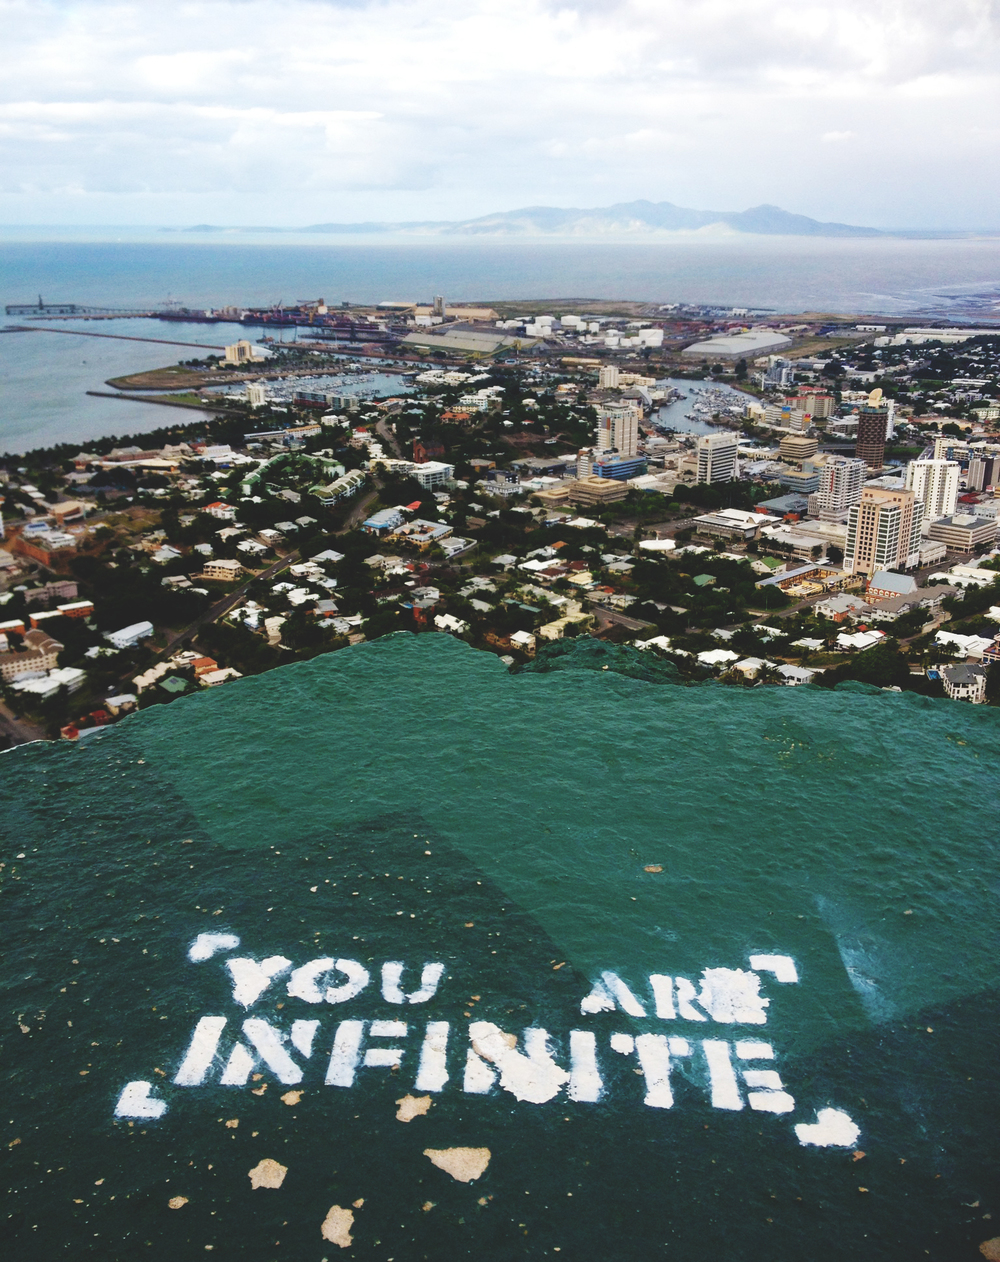 You are infinite.JPG